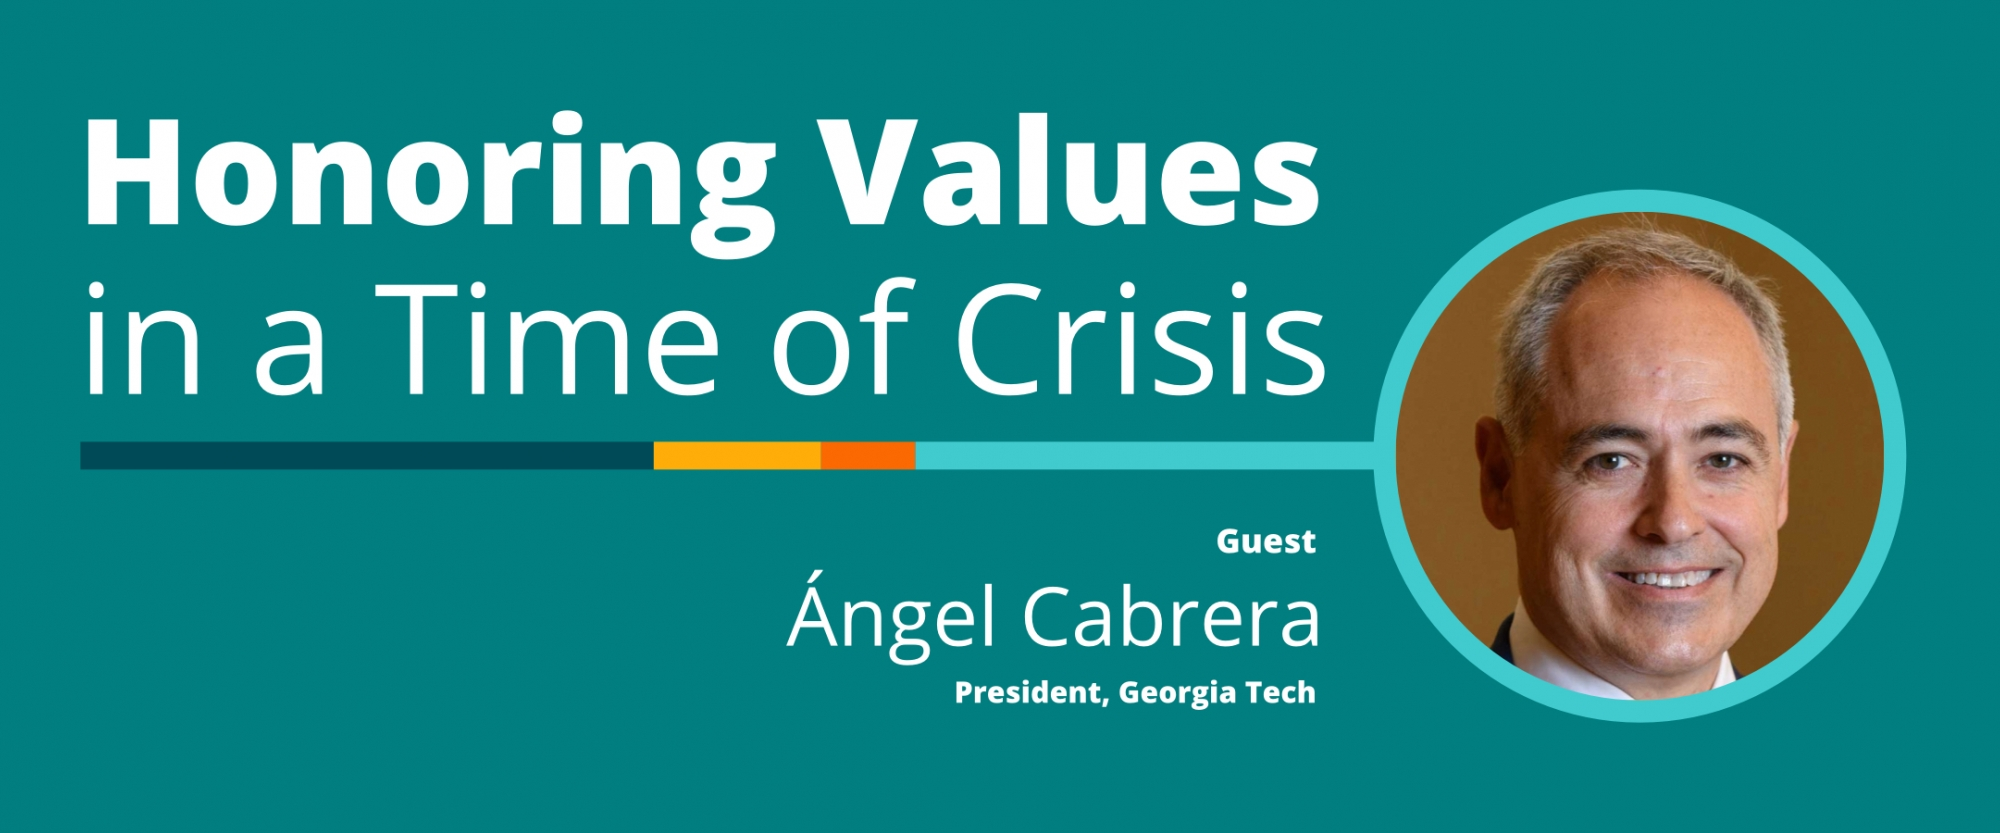 Honoring Values in a Time of Crisis: A Conversation With Ángel Cabrera, Georgia Tech President